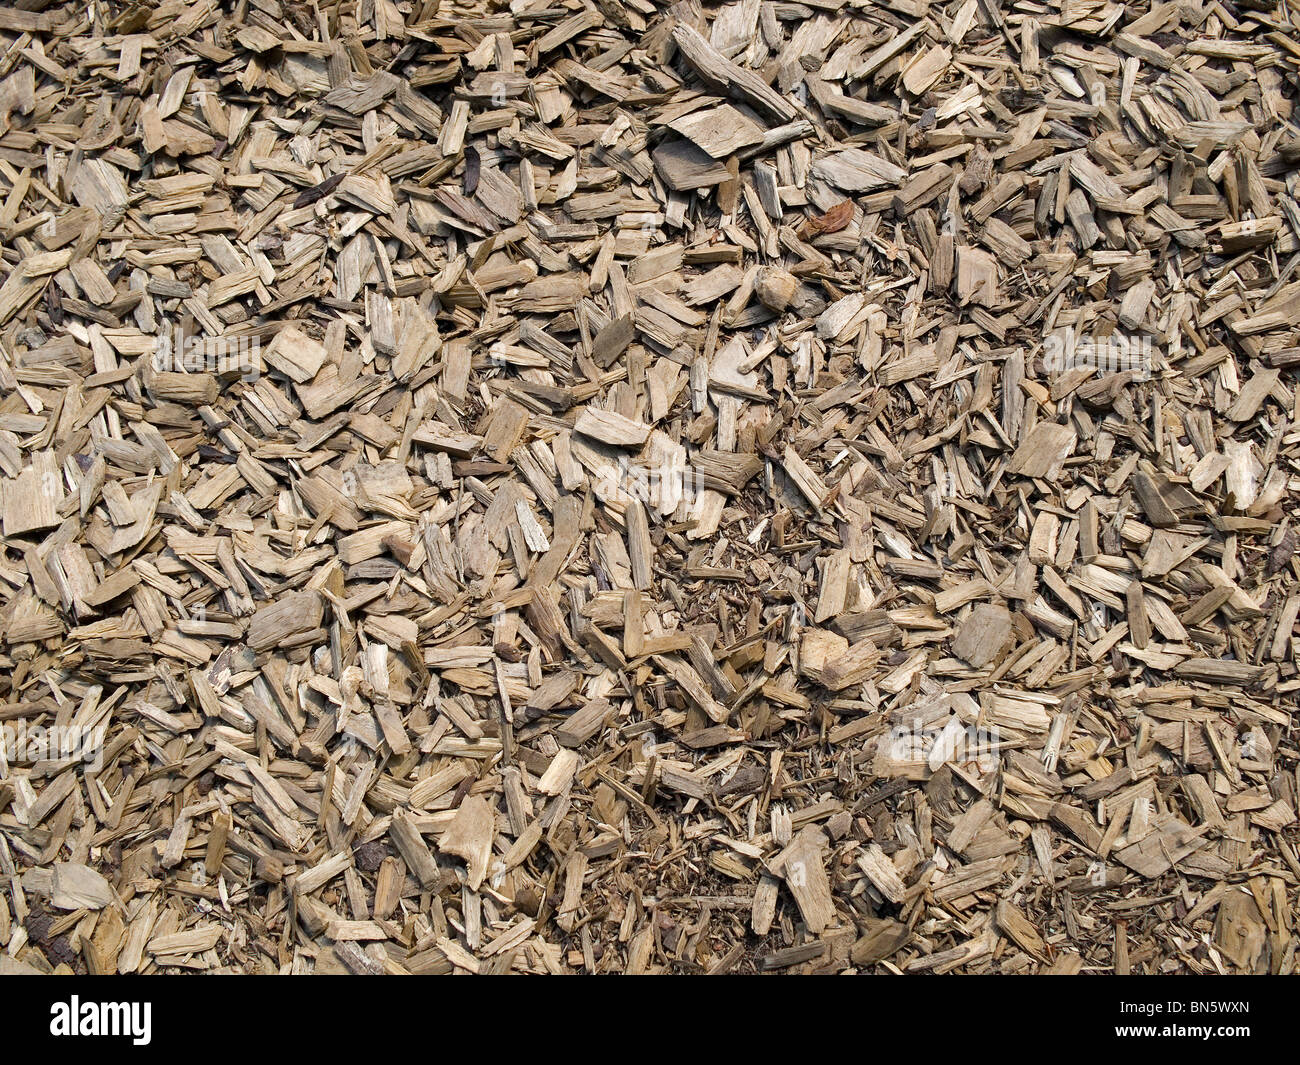 Wood chip and bark ground cover stock photo royalty free